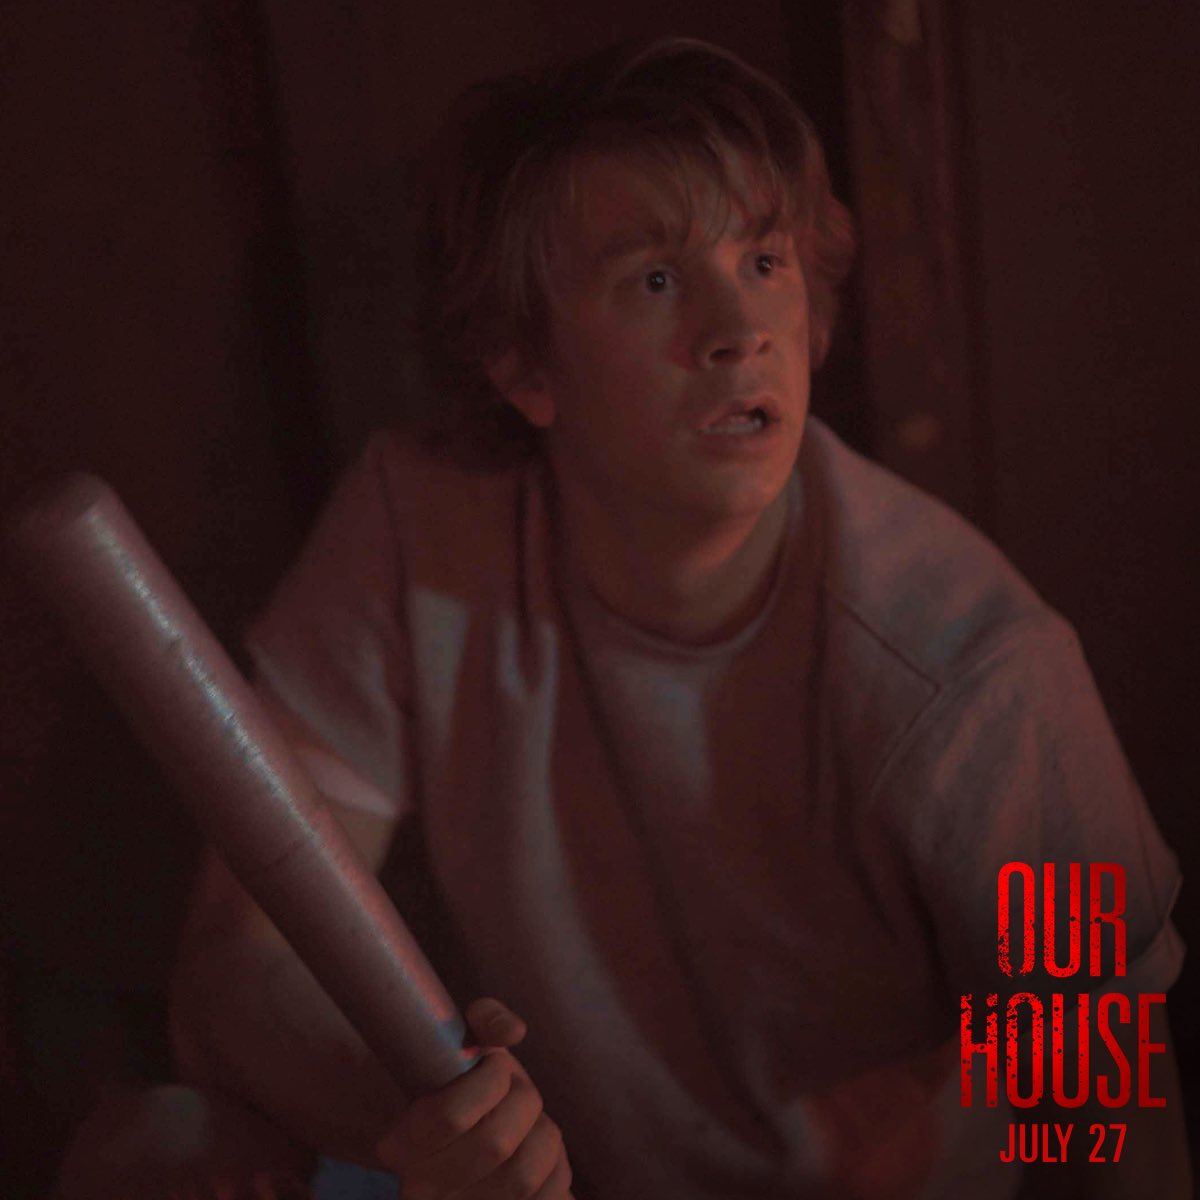 New technology has unforeseen consequences in #OurHouse - Coming to select theaters and On Demand July 27.